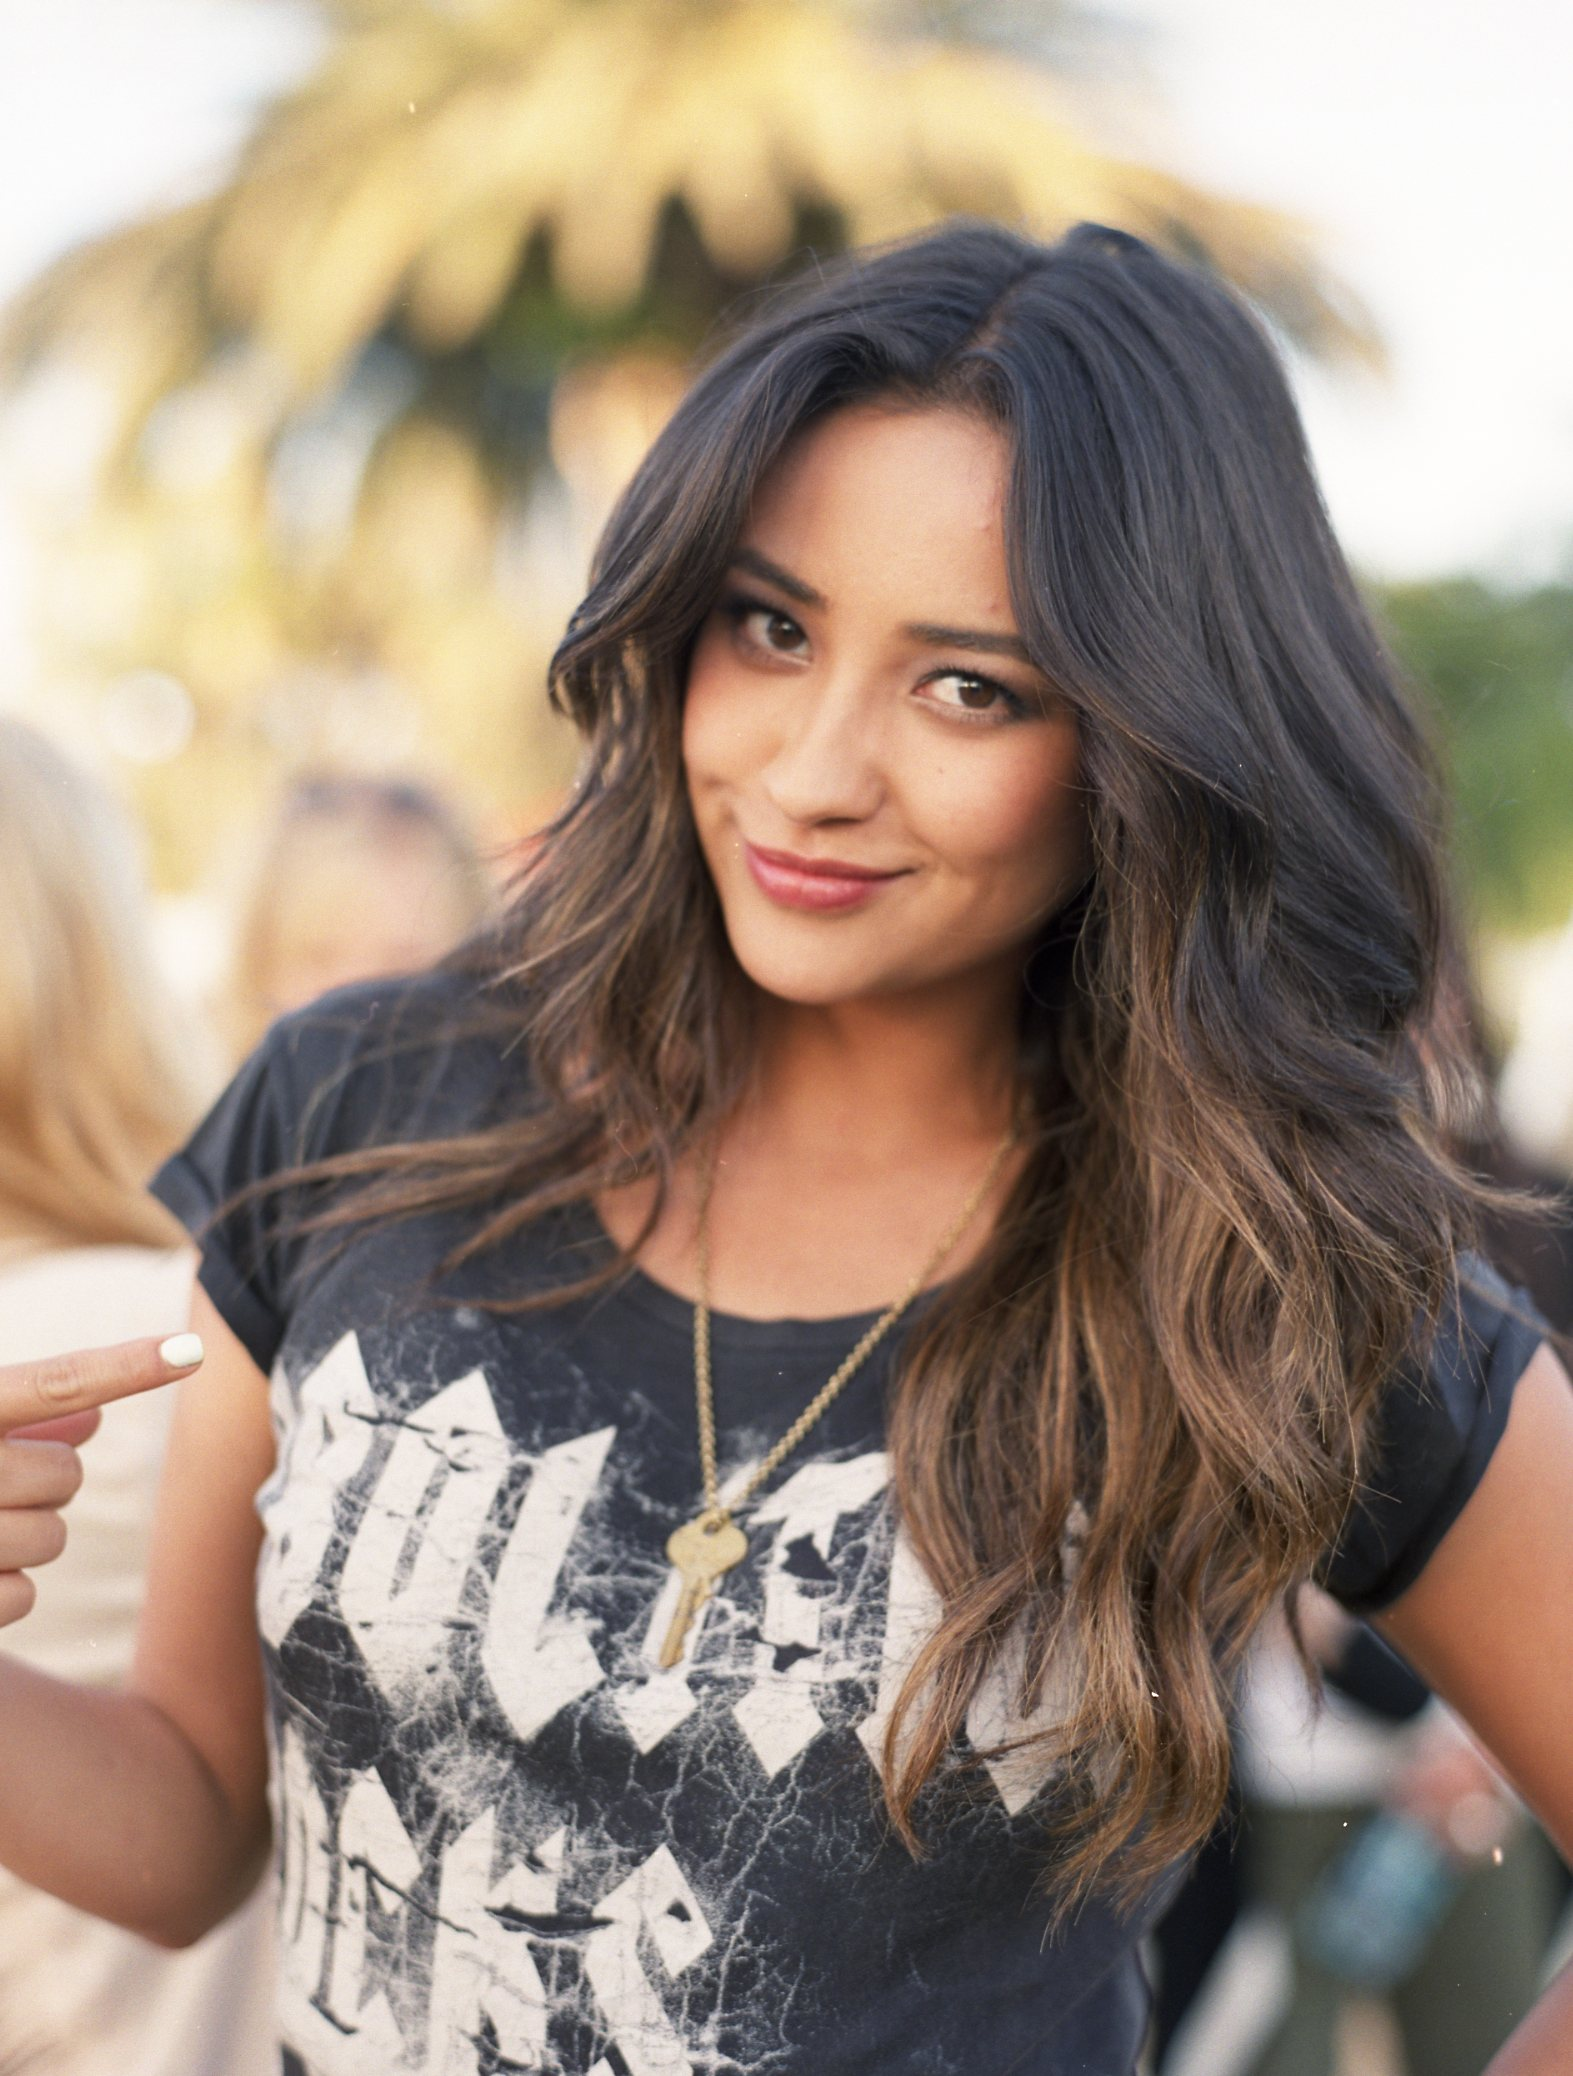 Shay on the Red Carpet